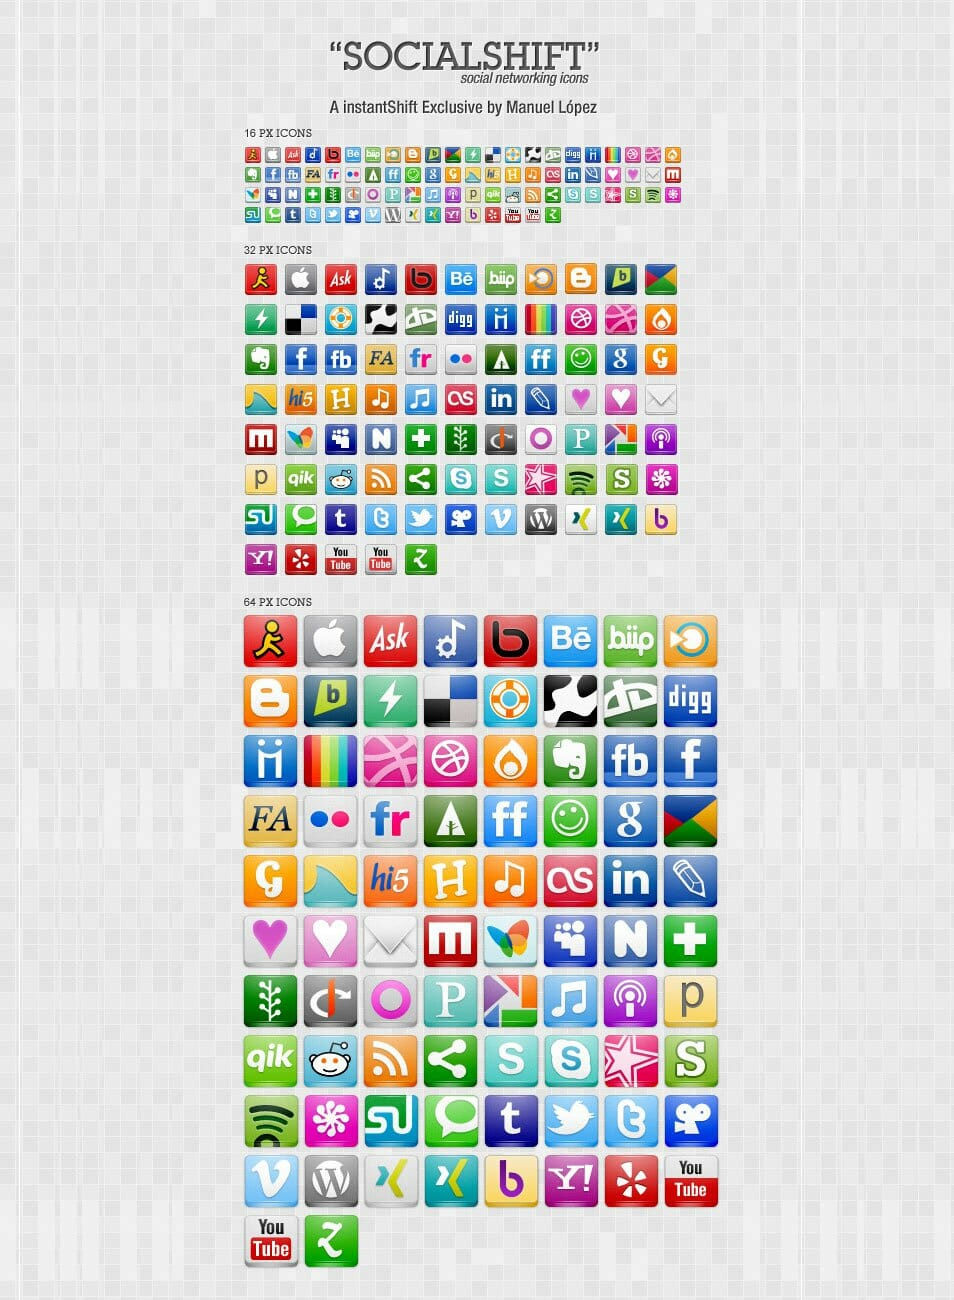 SocialShift Icon Set: 246 Free Social Networking Icons